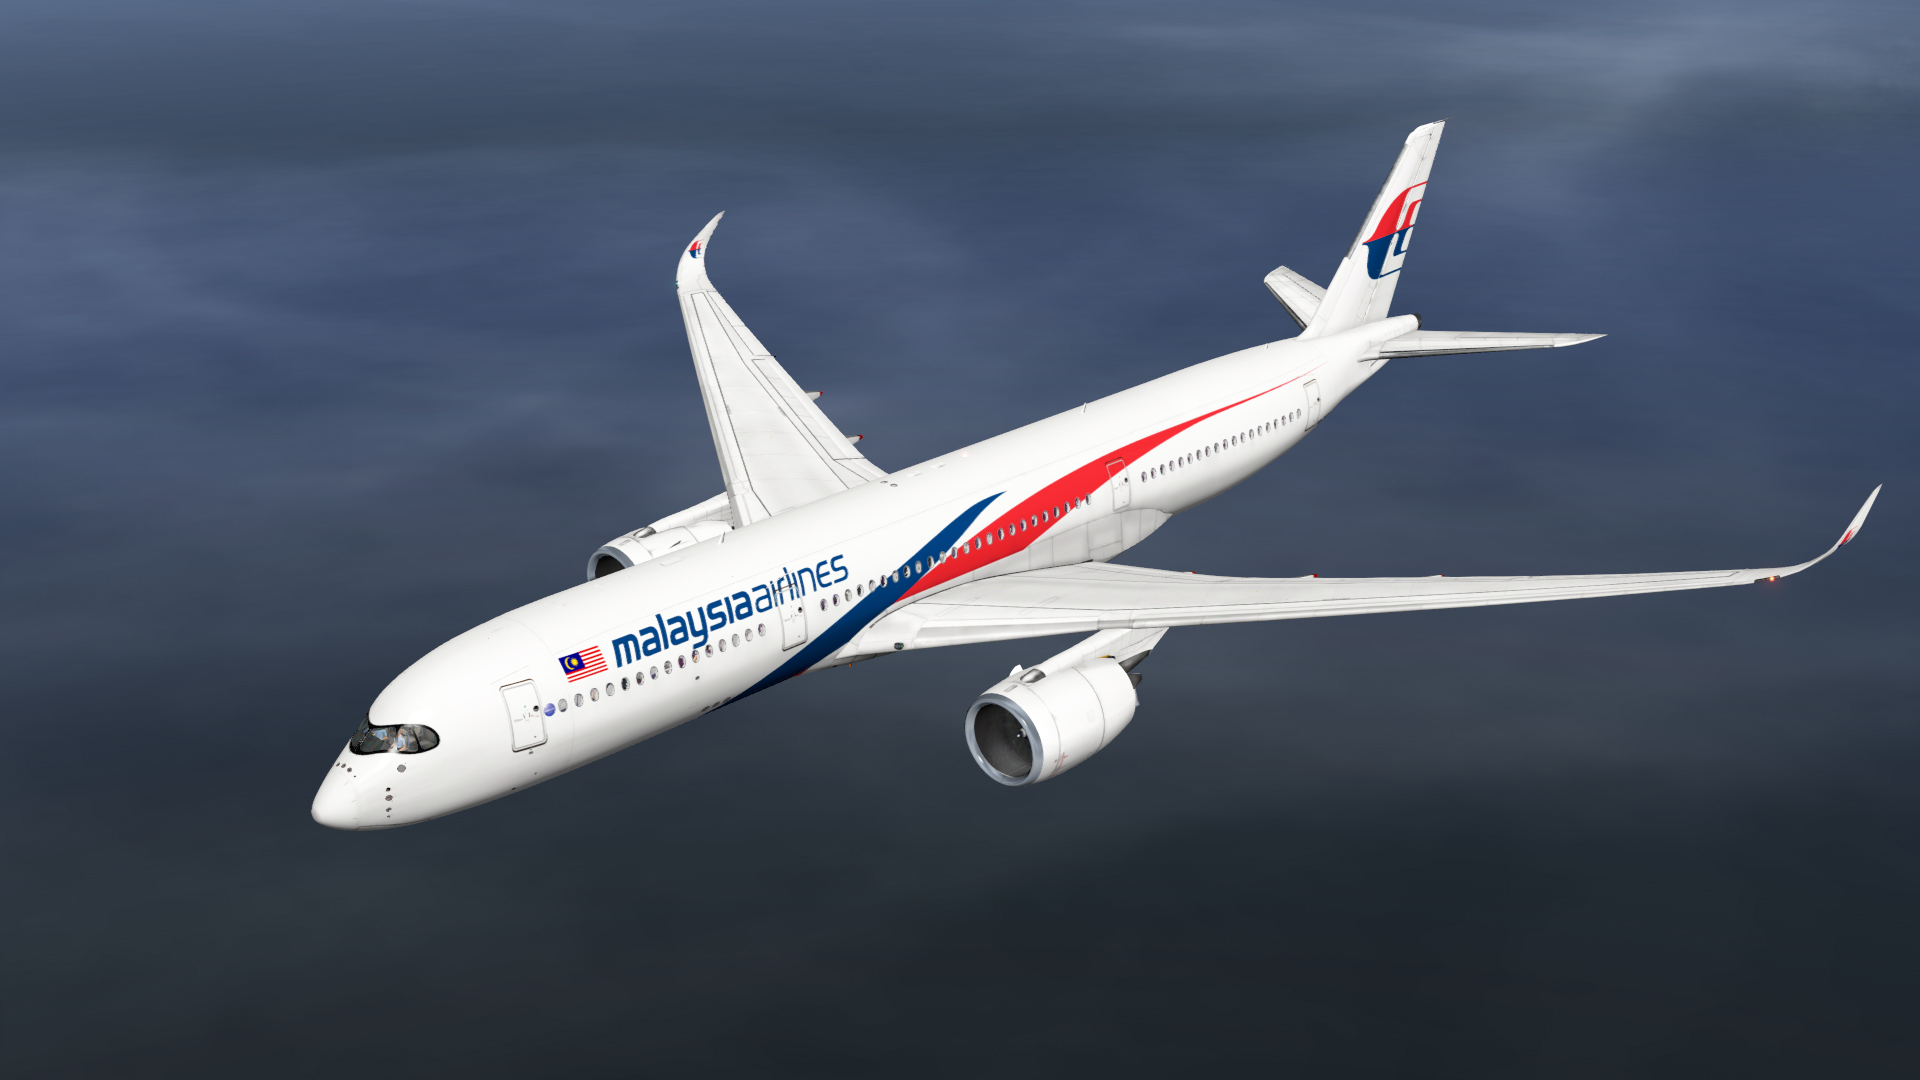 Malaysia Airlines Airbus A350-900 - Aircraft Skins - Liveries - X